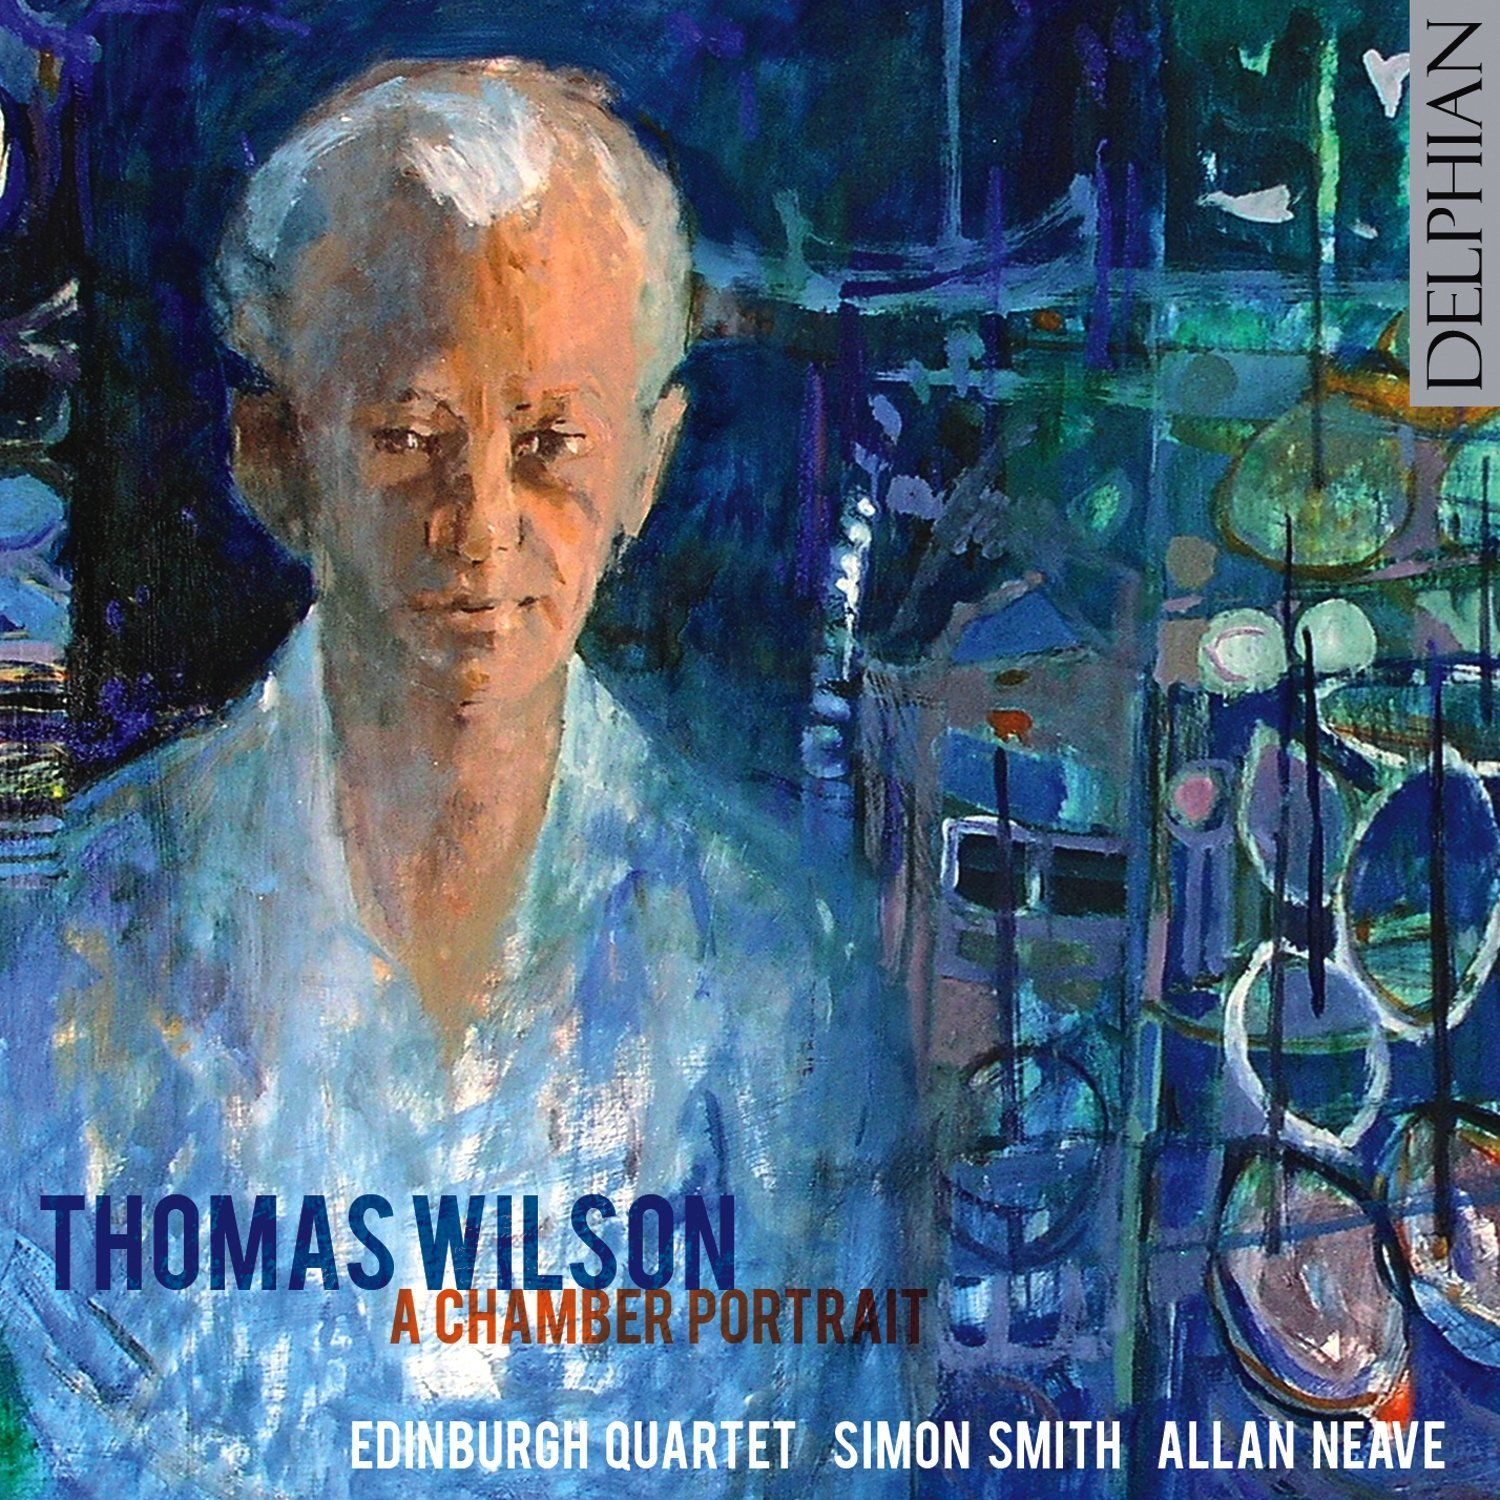 Thomas Wilson: a chamber portrait CD Delphian Records